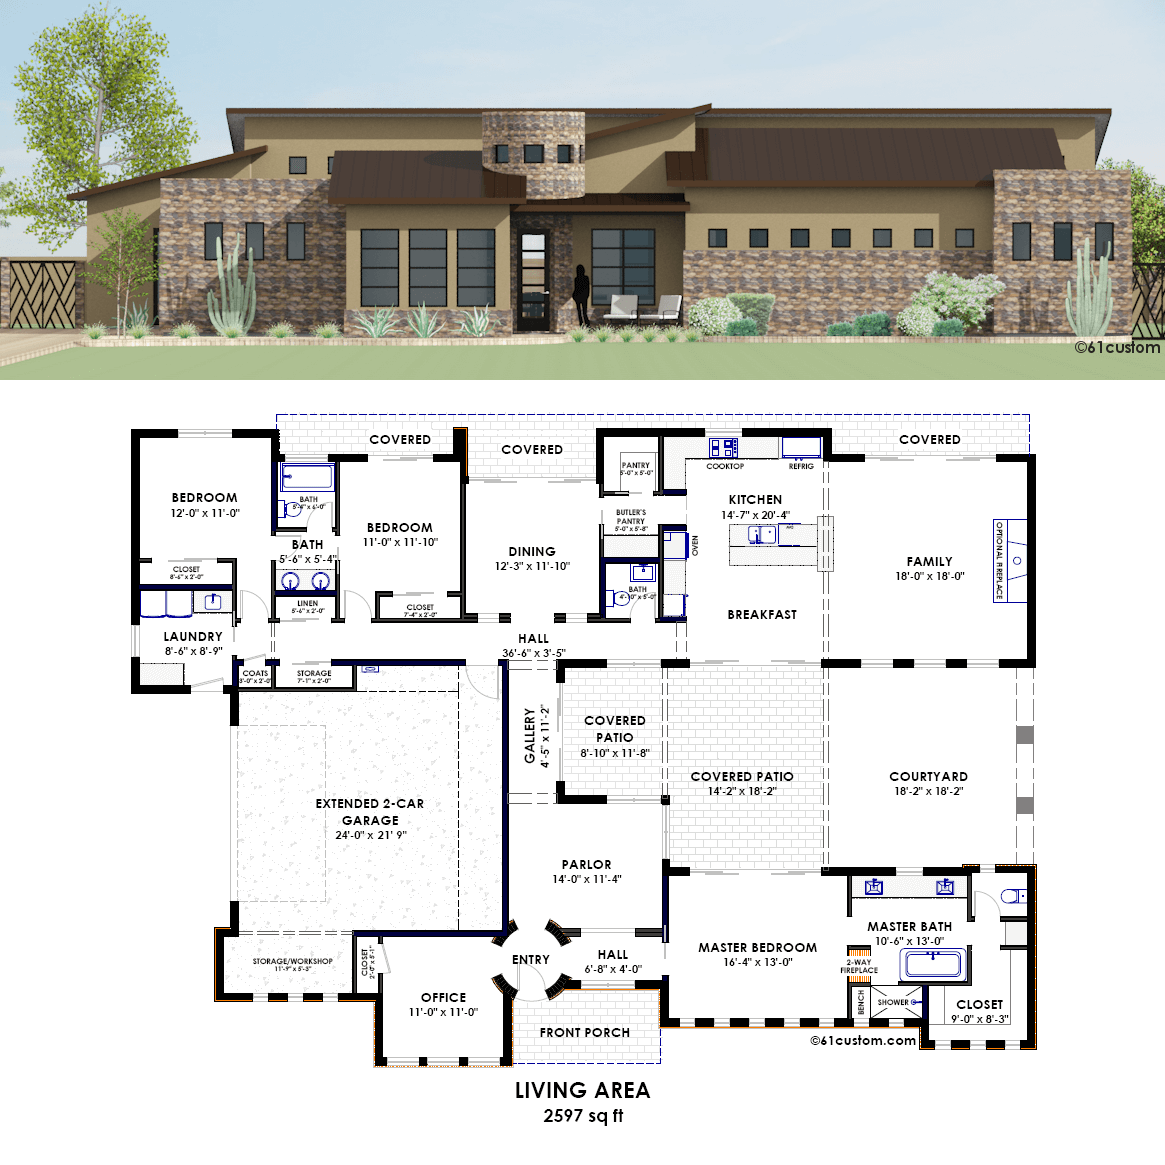 House plans and design contemporary house plans with for Custom home plans online